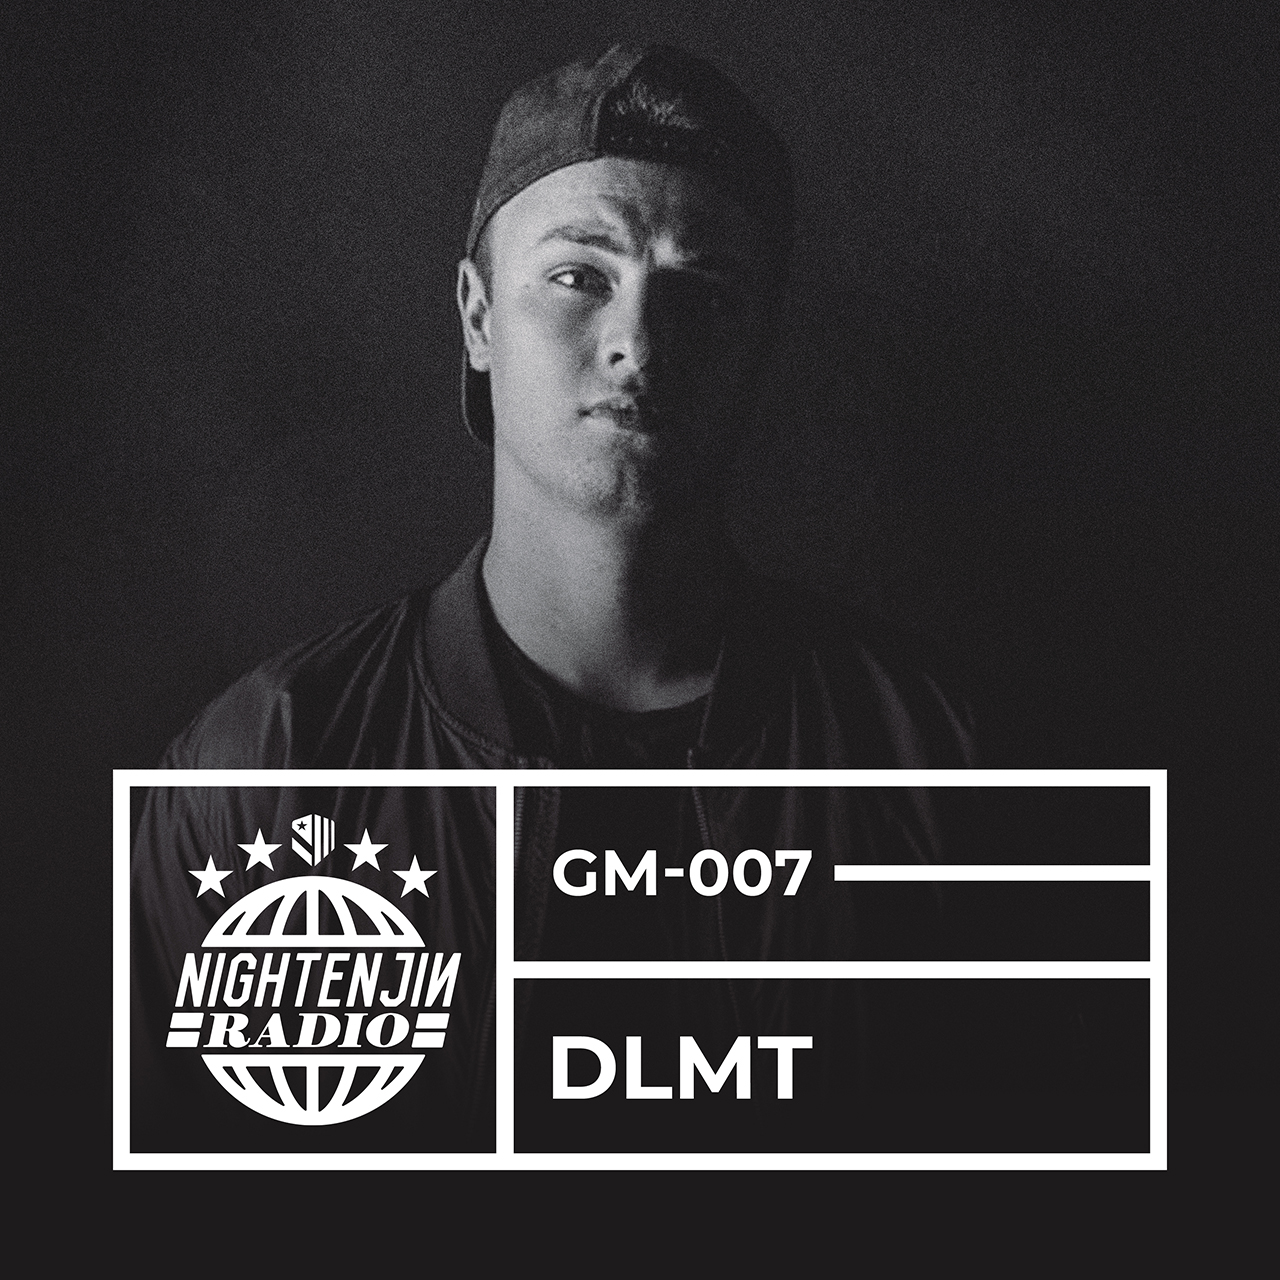 Nightenjin Radio GM-007: DLMT